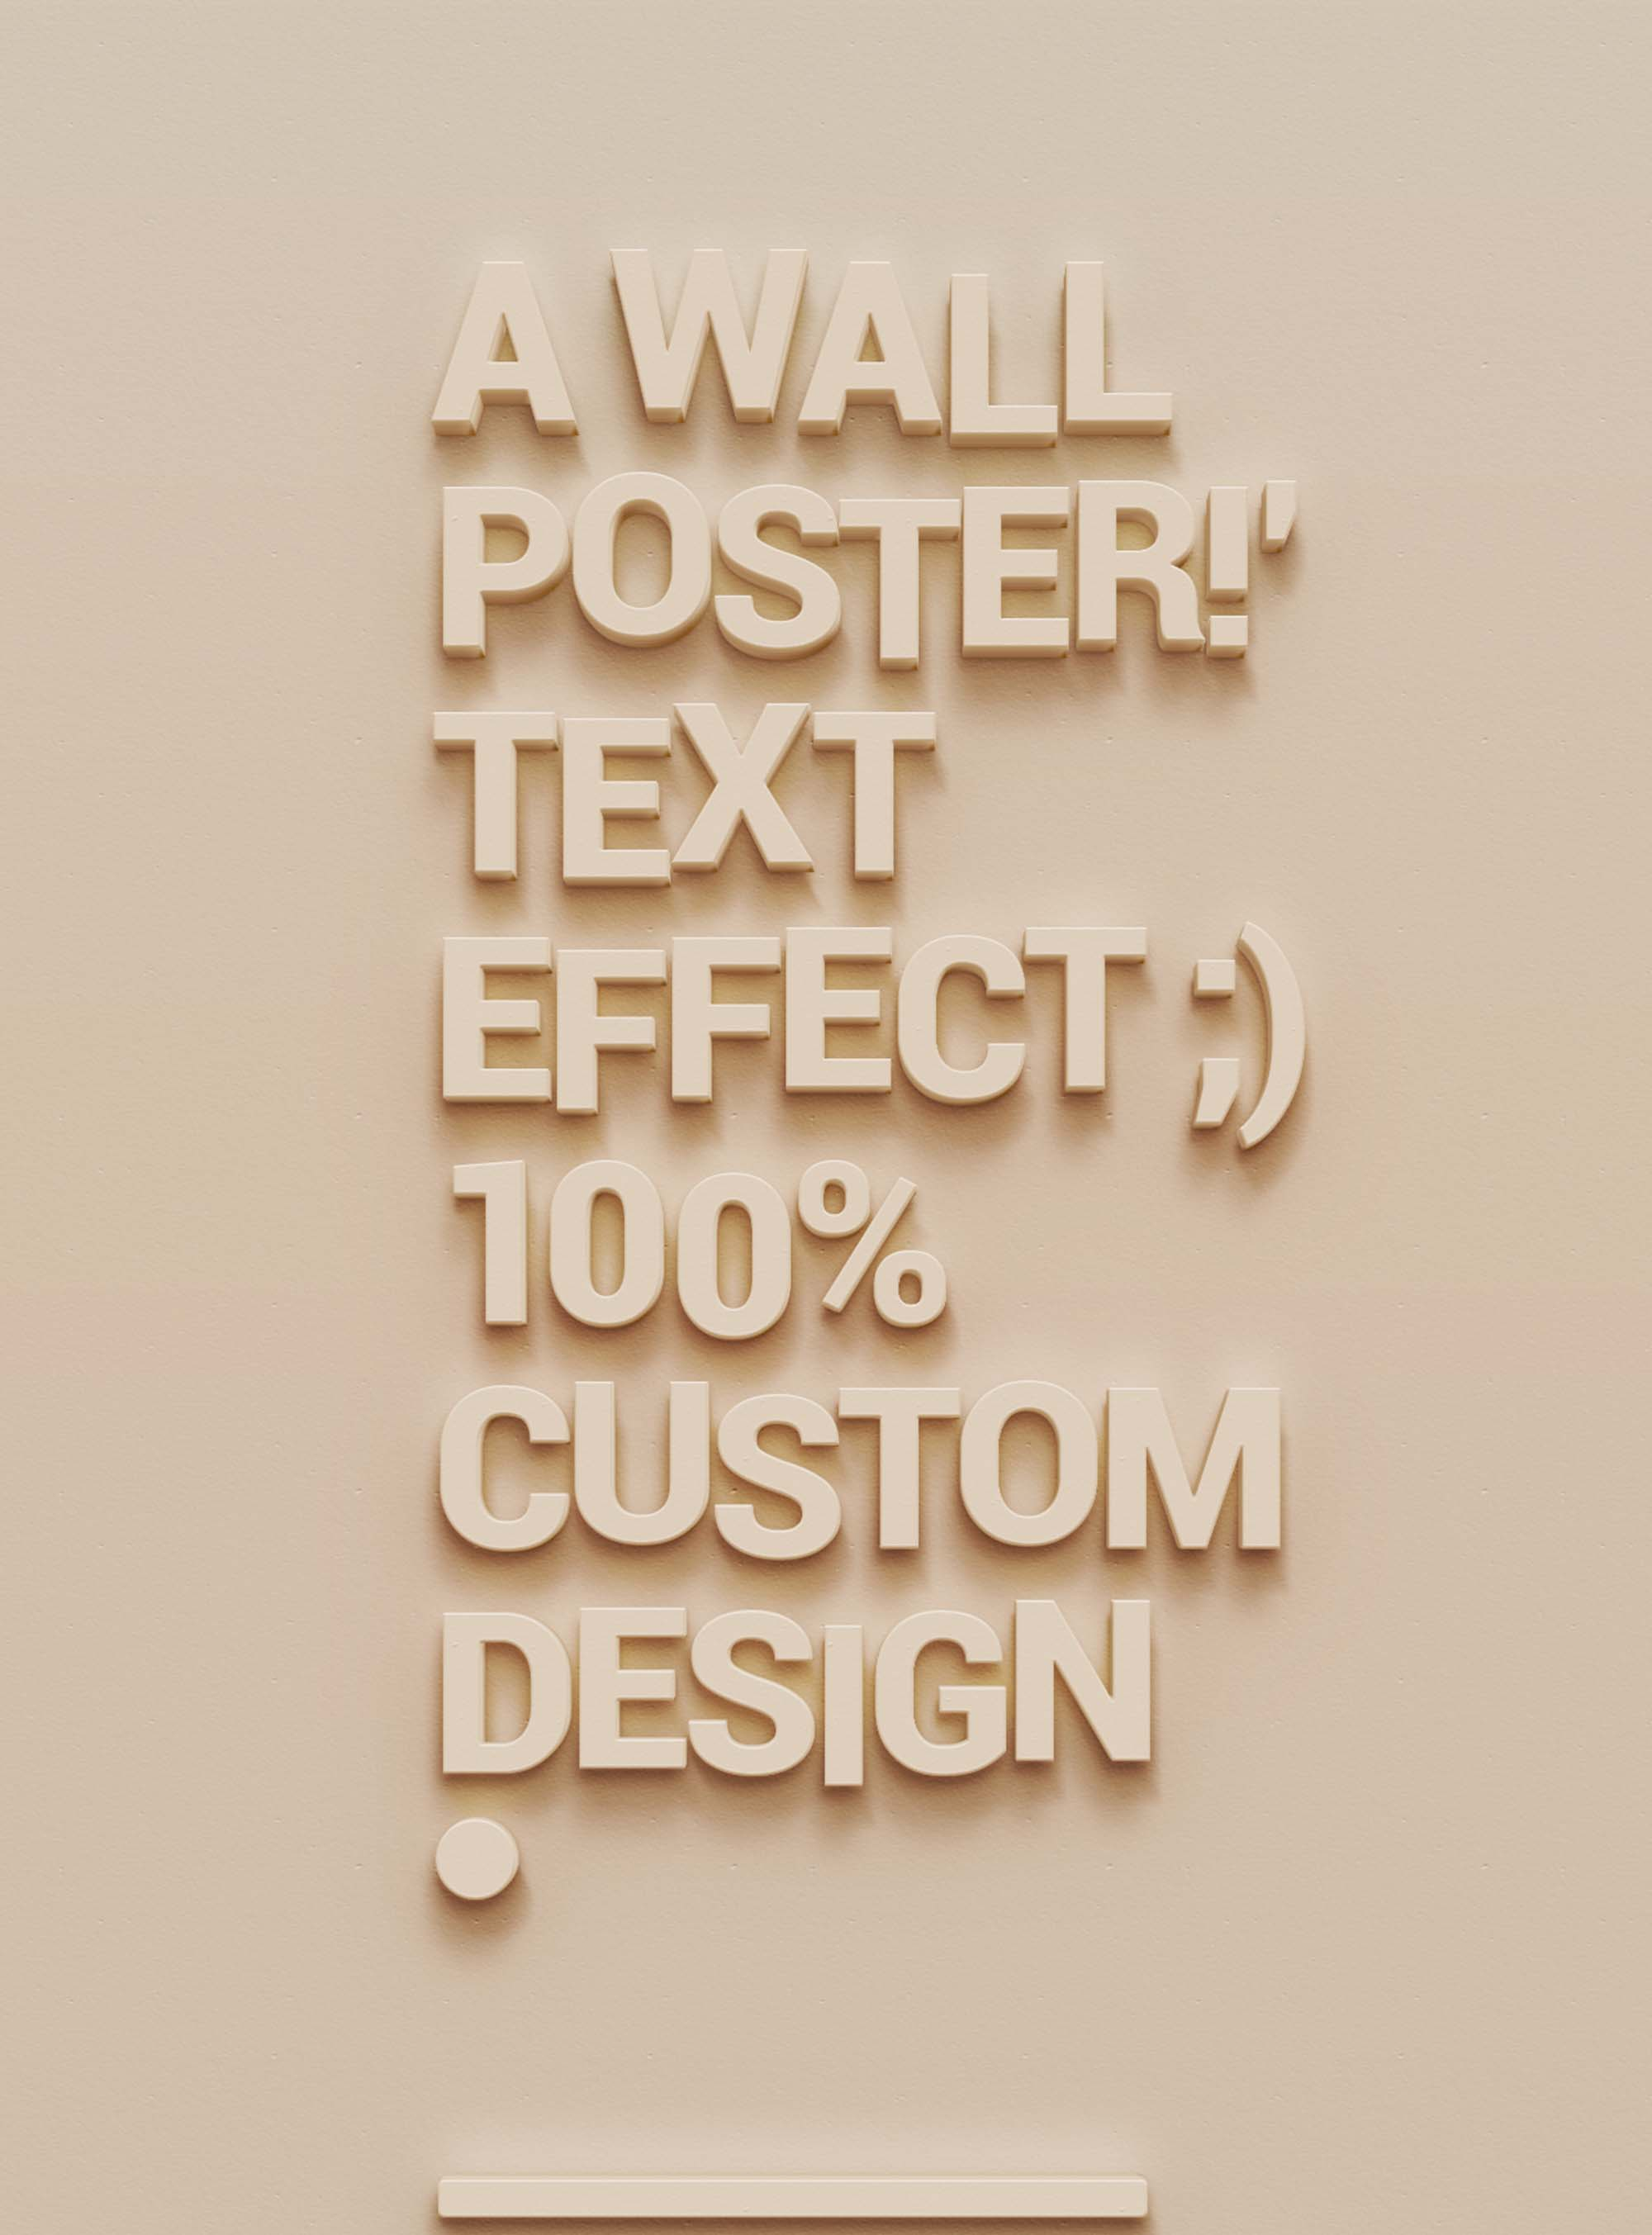 Wall Poster Text Effect